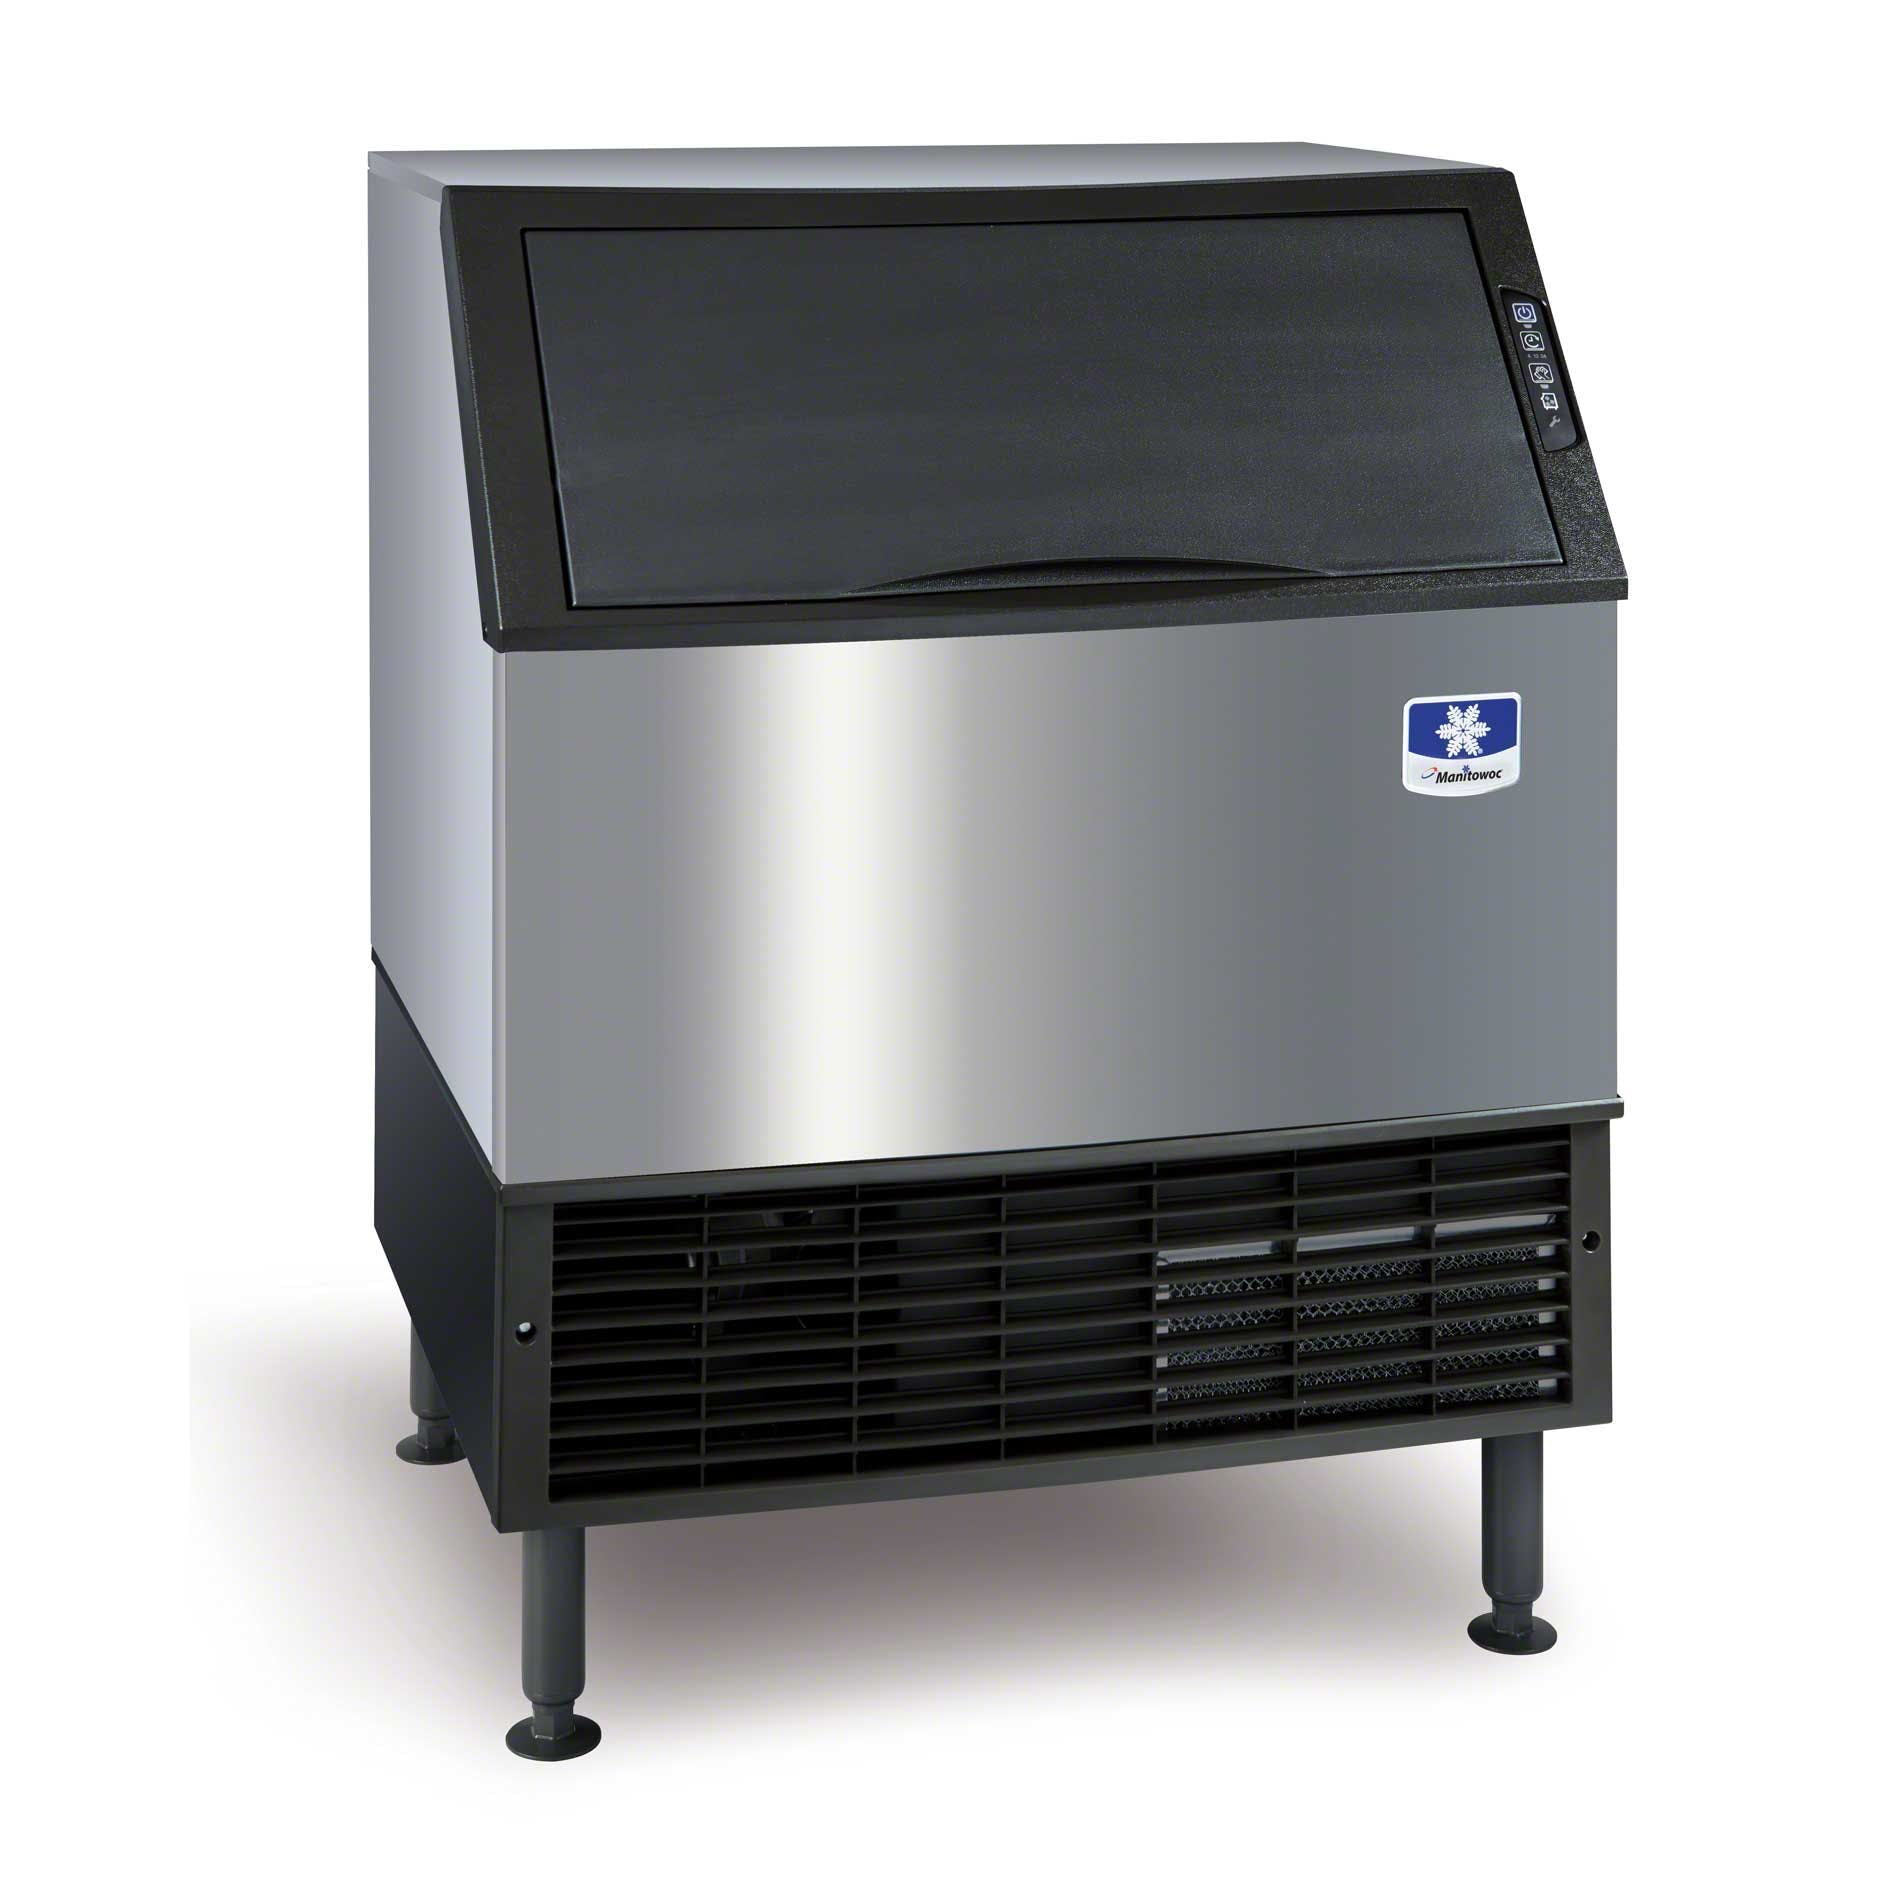 Manitowoc - UY-0310A 304 lb Half-Cube Undercounter Ice Machine - U-310 Neo Series Ice machine sold by Food Service Warehouse